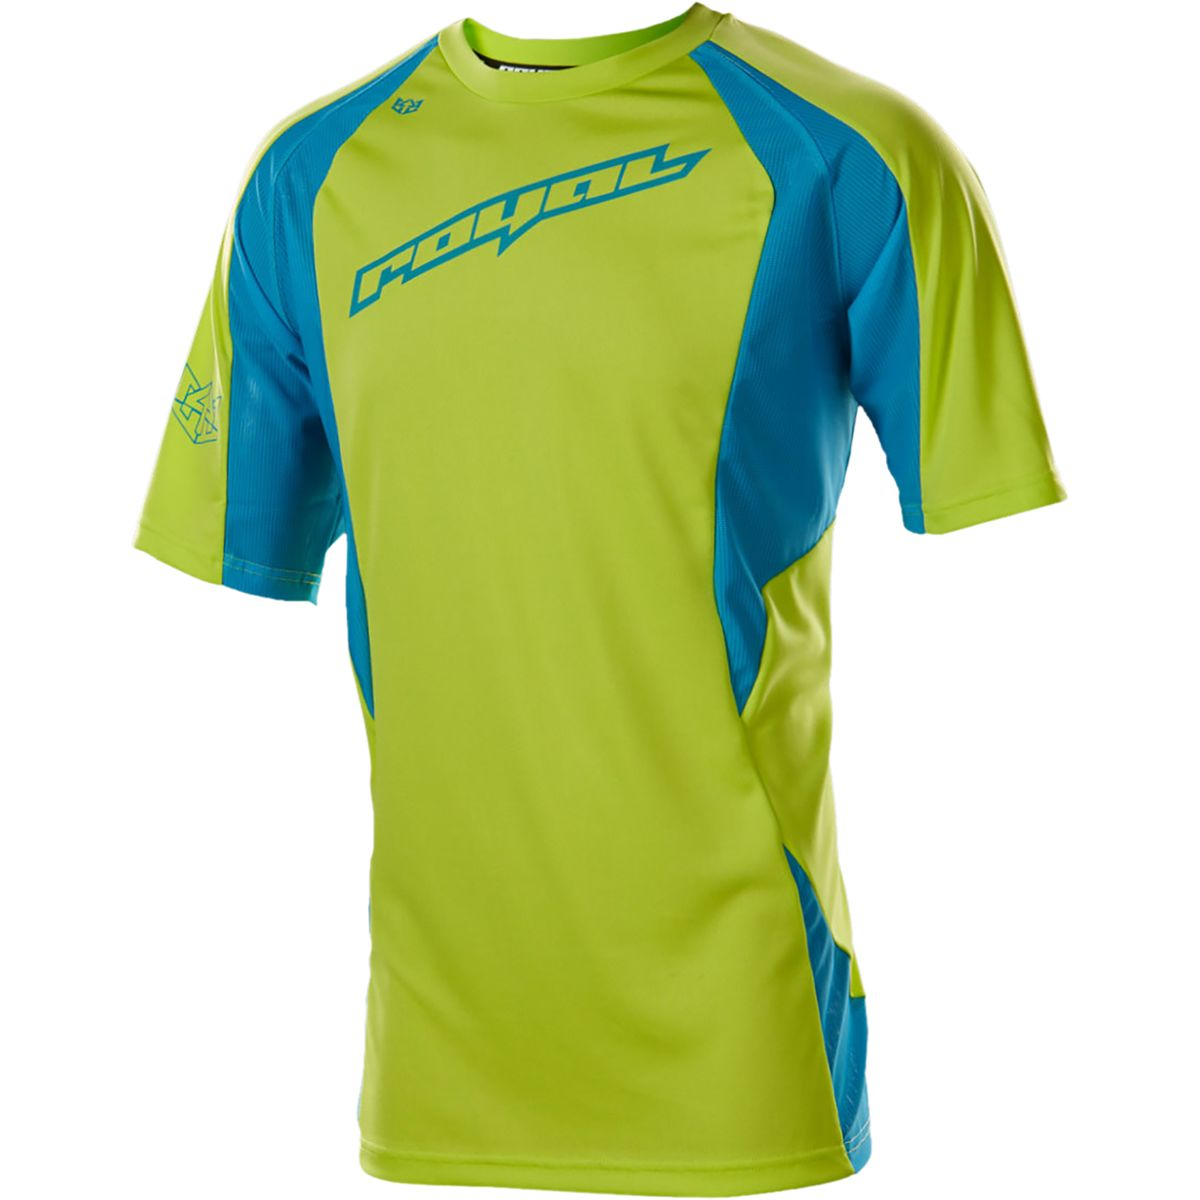 Royal Racing Turbulence Jersey Short Sleeve Men's